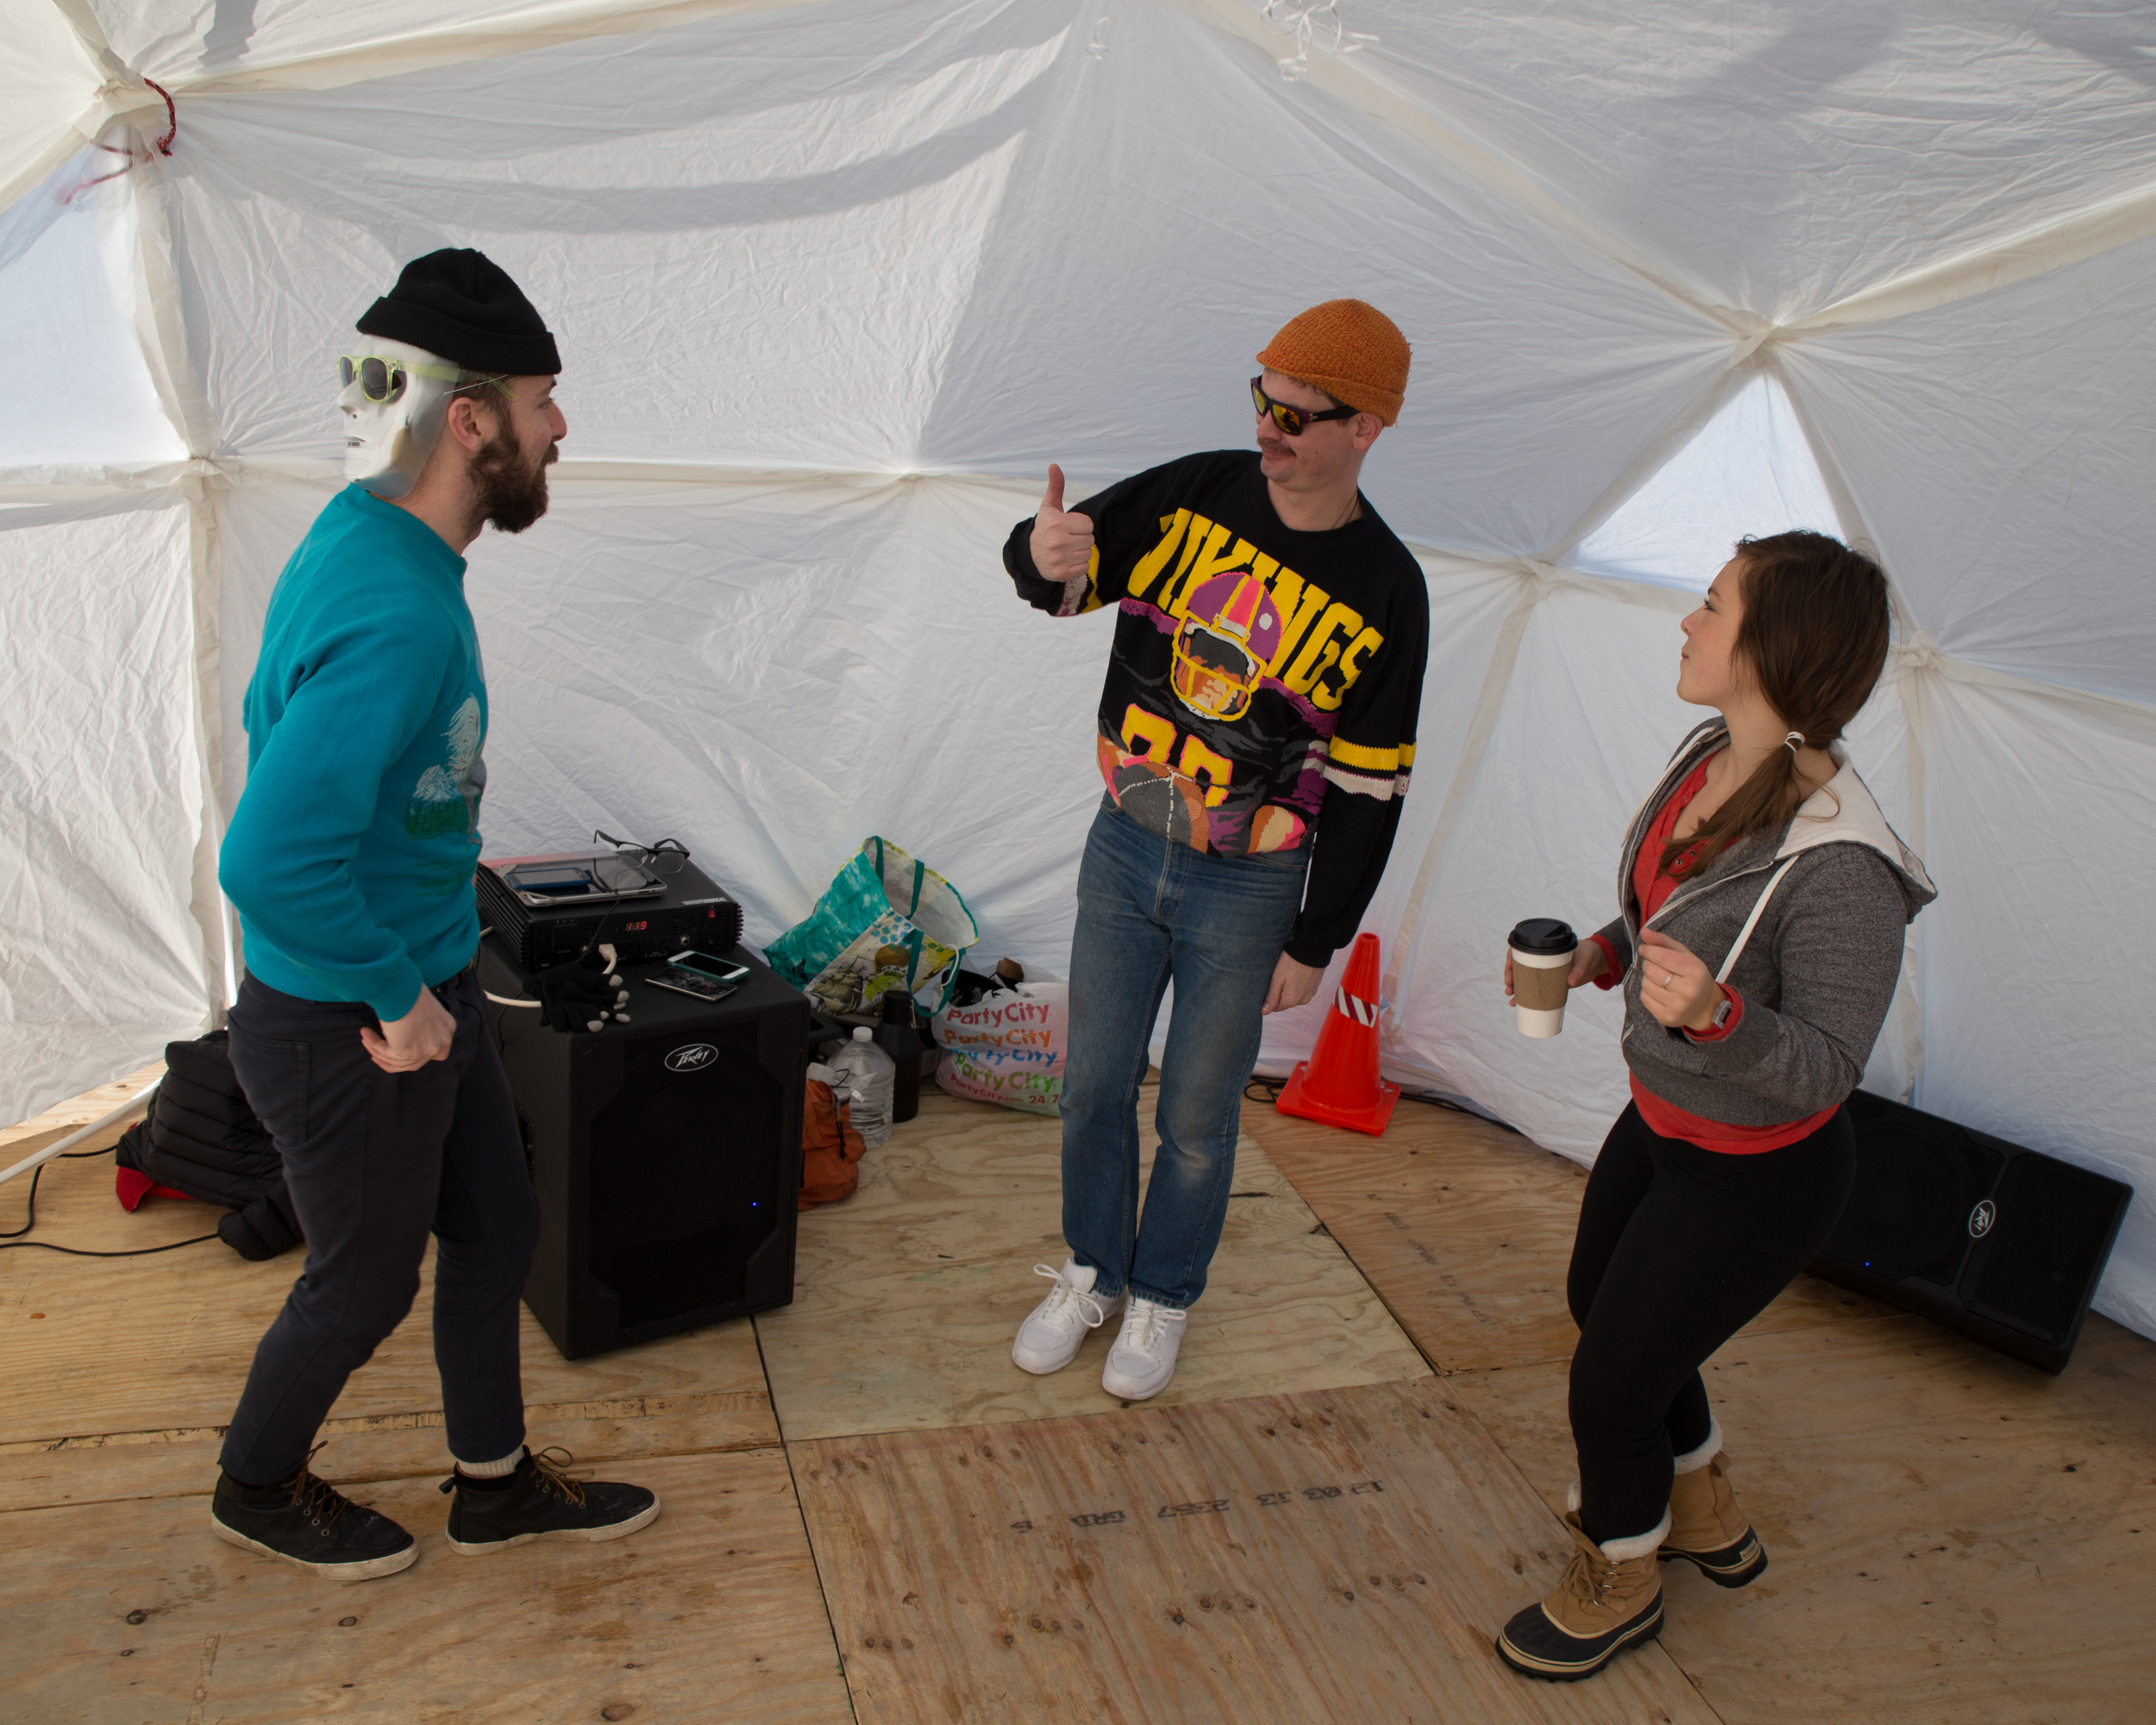 Warm up in the Dance Shanty. Always energetic. You will be guaranteed to leave with a smile on your face!